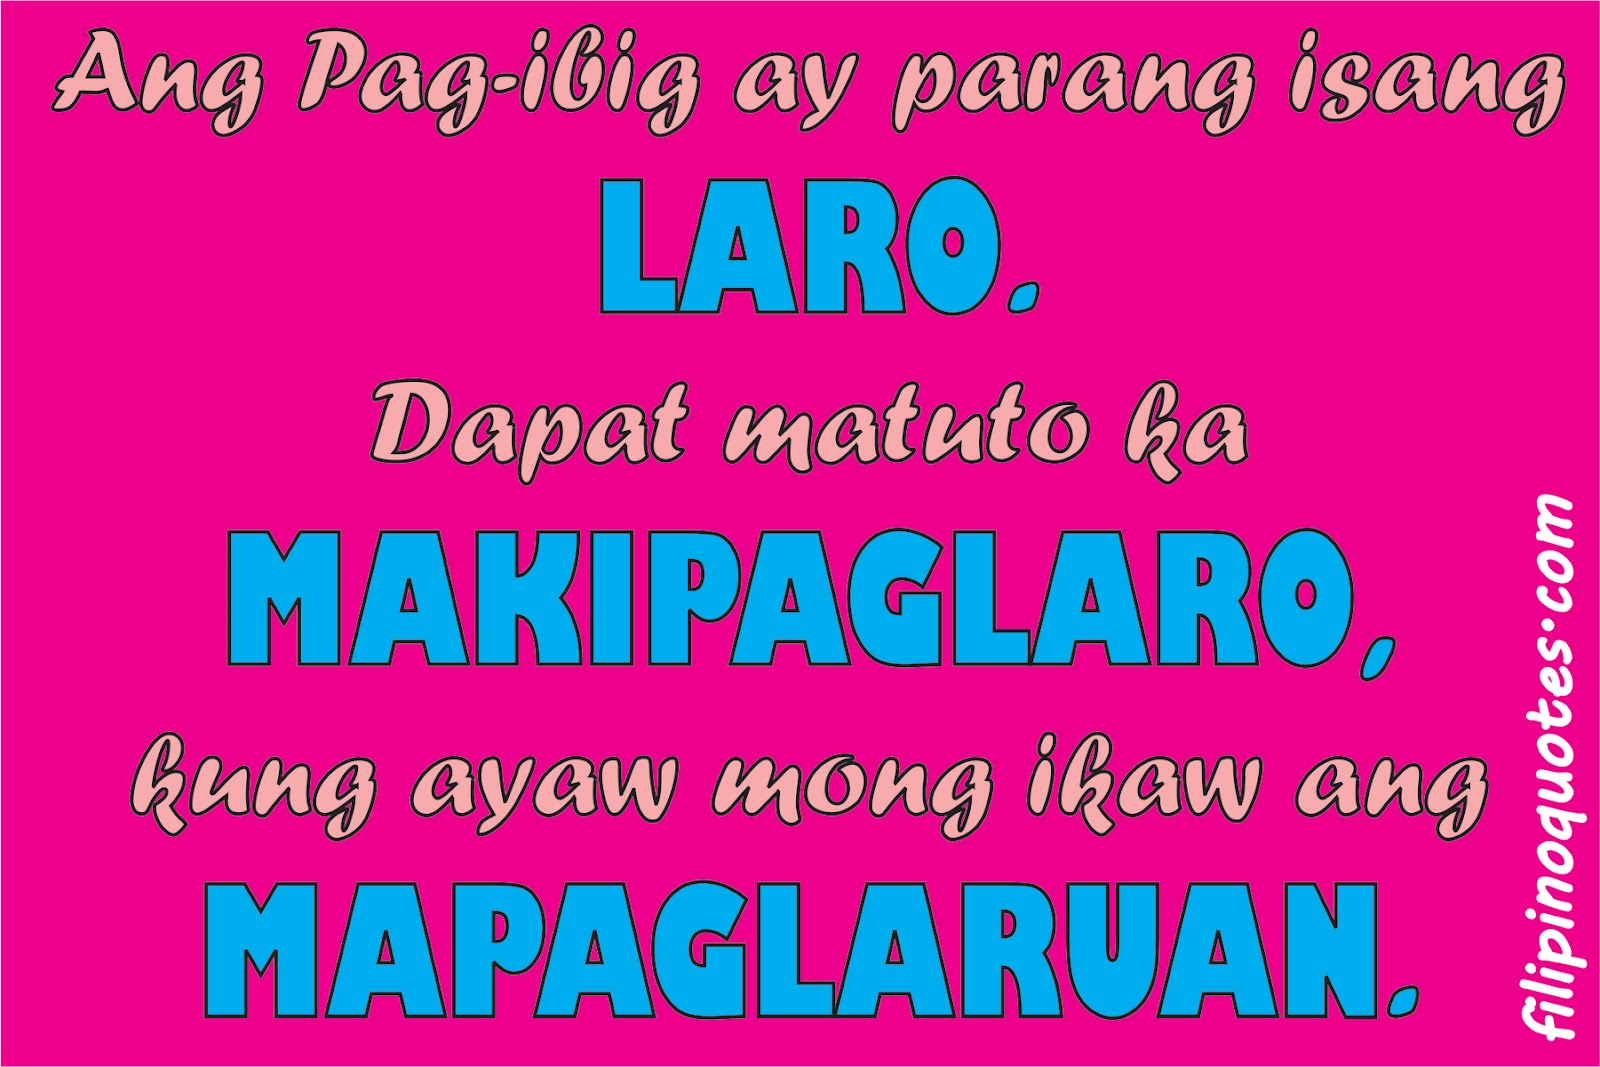 tagalog love quotes may 2012 tagalog love quotes